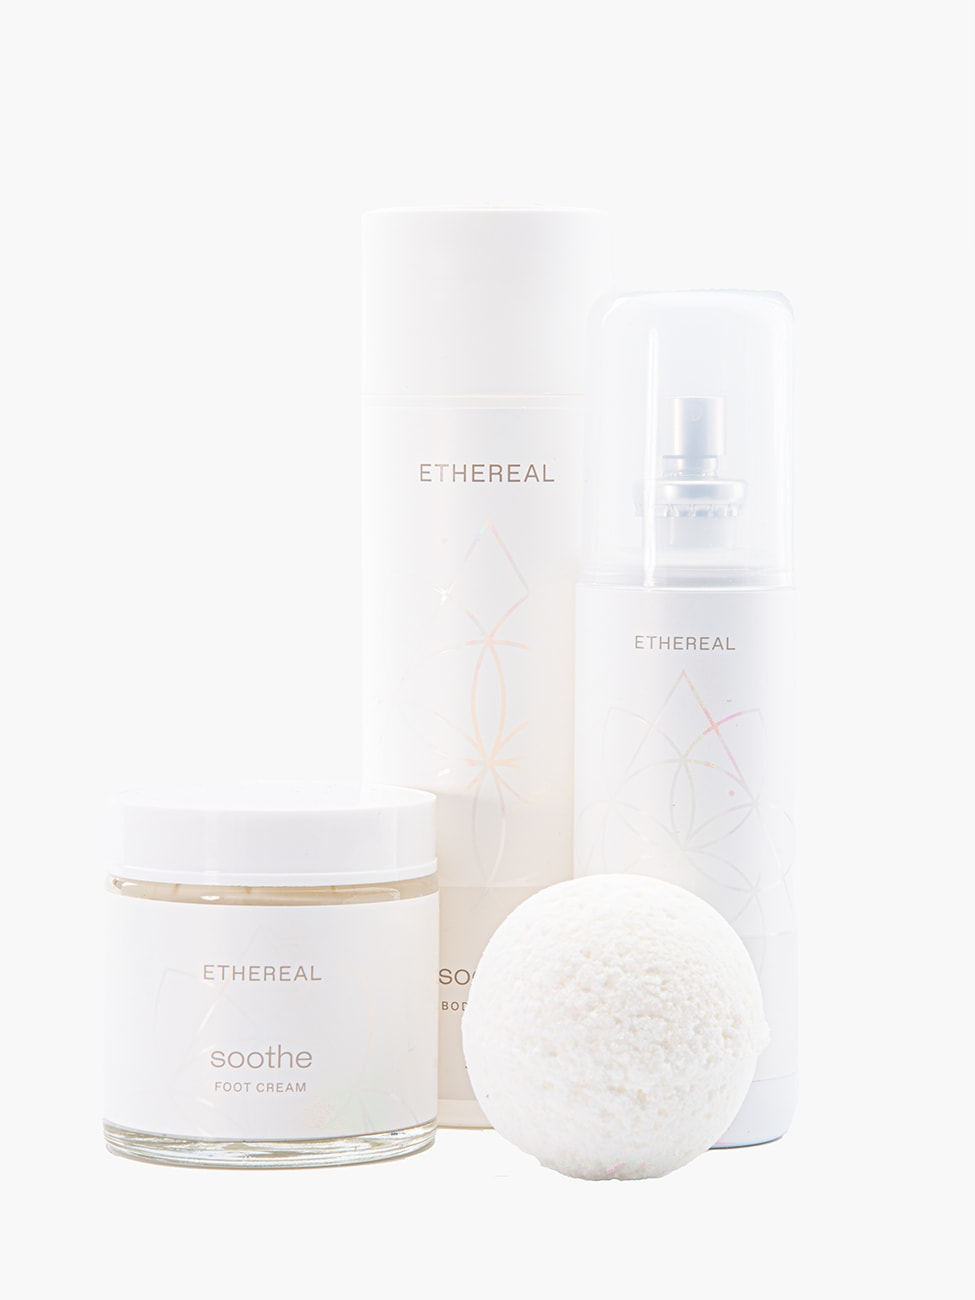 Soothe_Serie_Ethereal_Dermocosmetics_Skincare_Handmade_Greek_Products